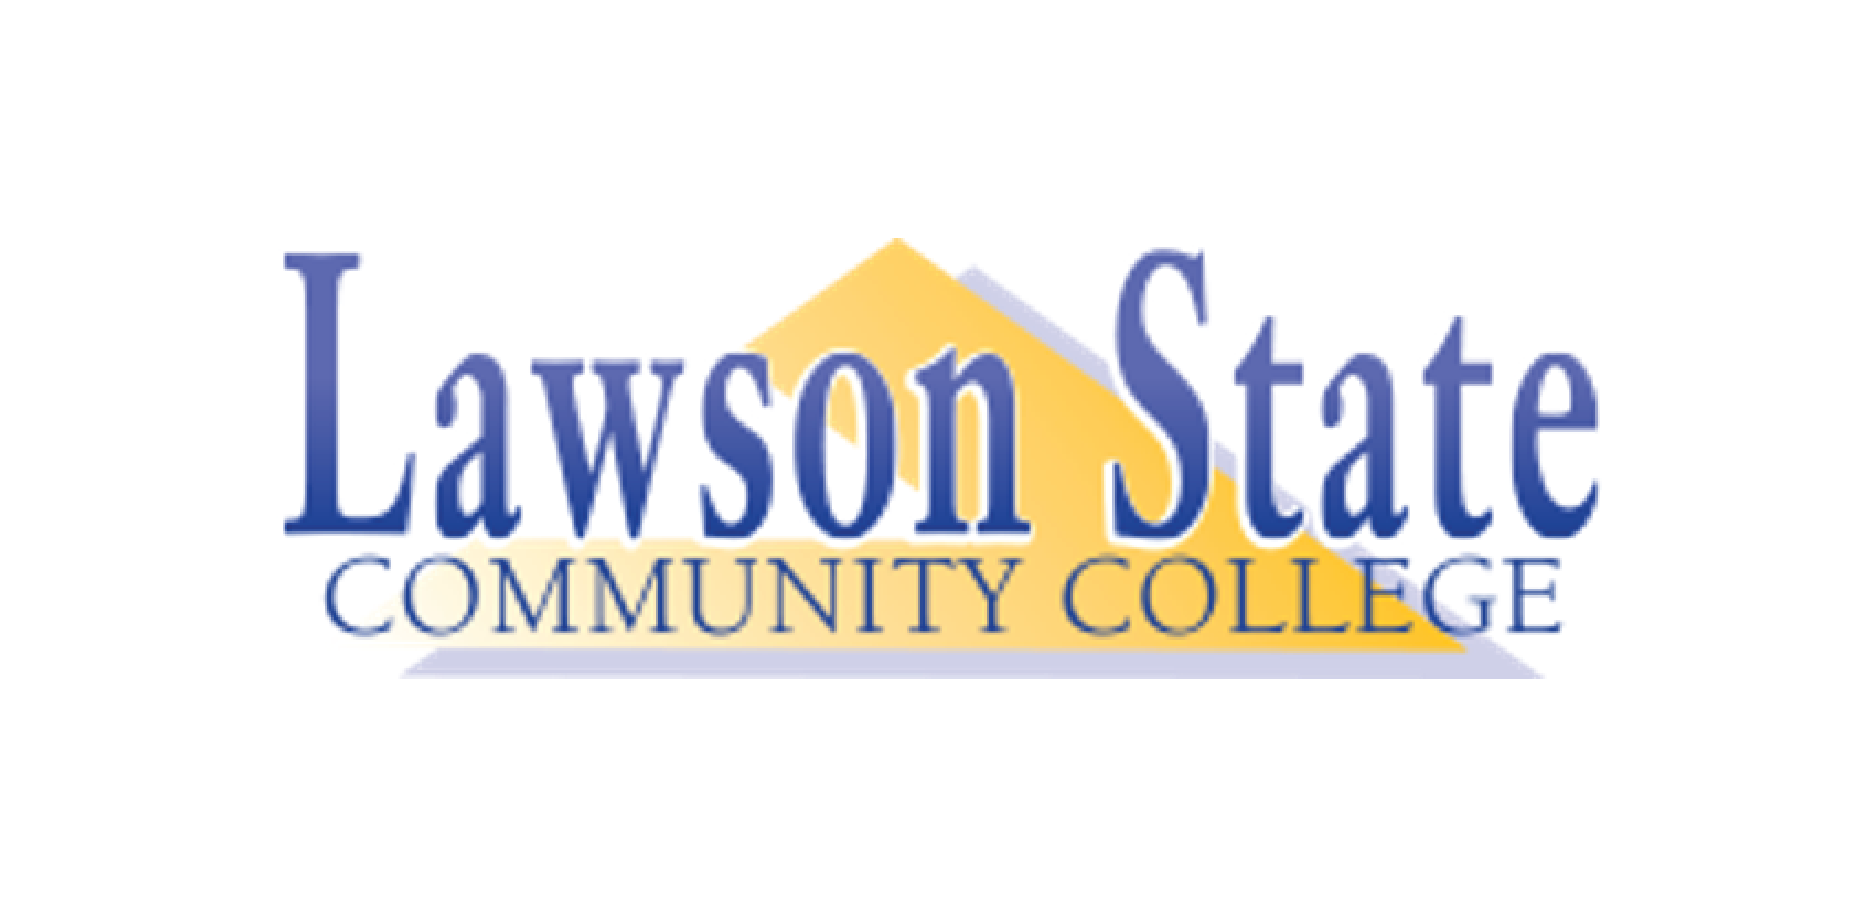 Lawson State Community College Logo